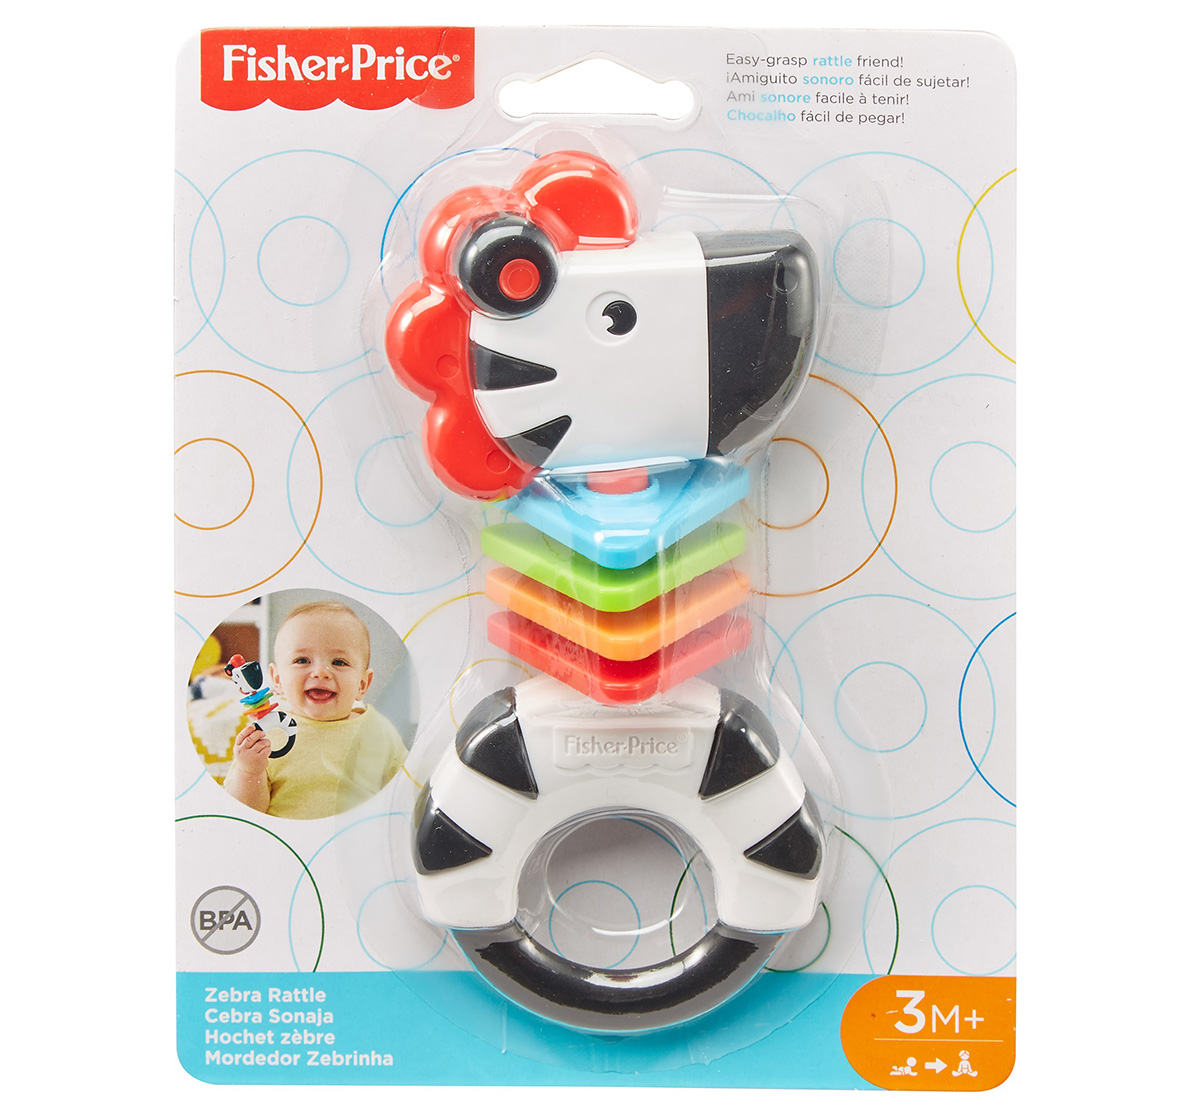 Fisher-Price | Fisher-Price Sigstyle OPP Peg  for Kids age 0M+